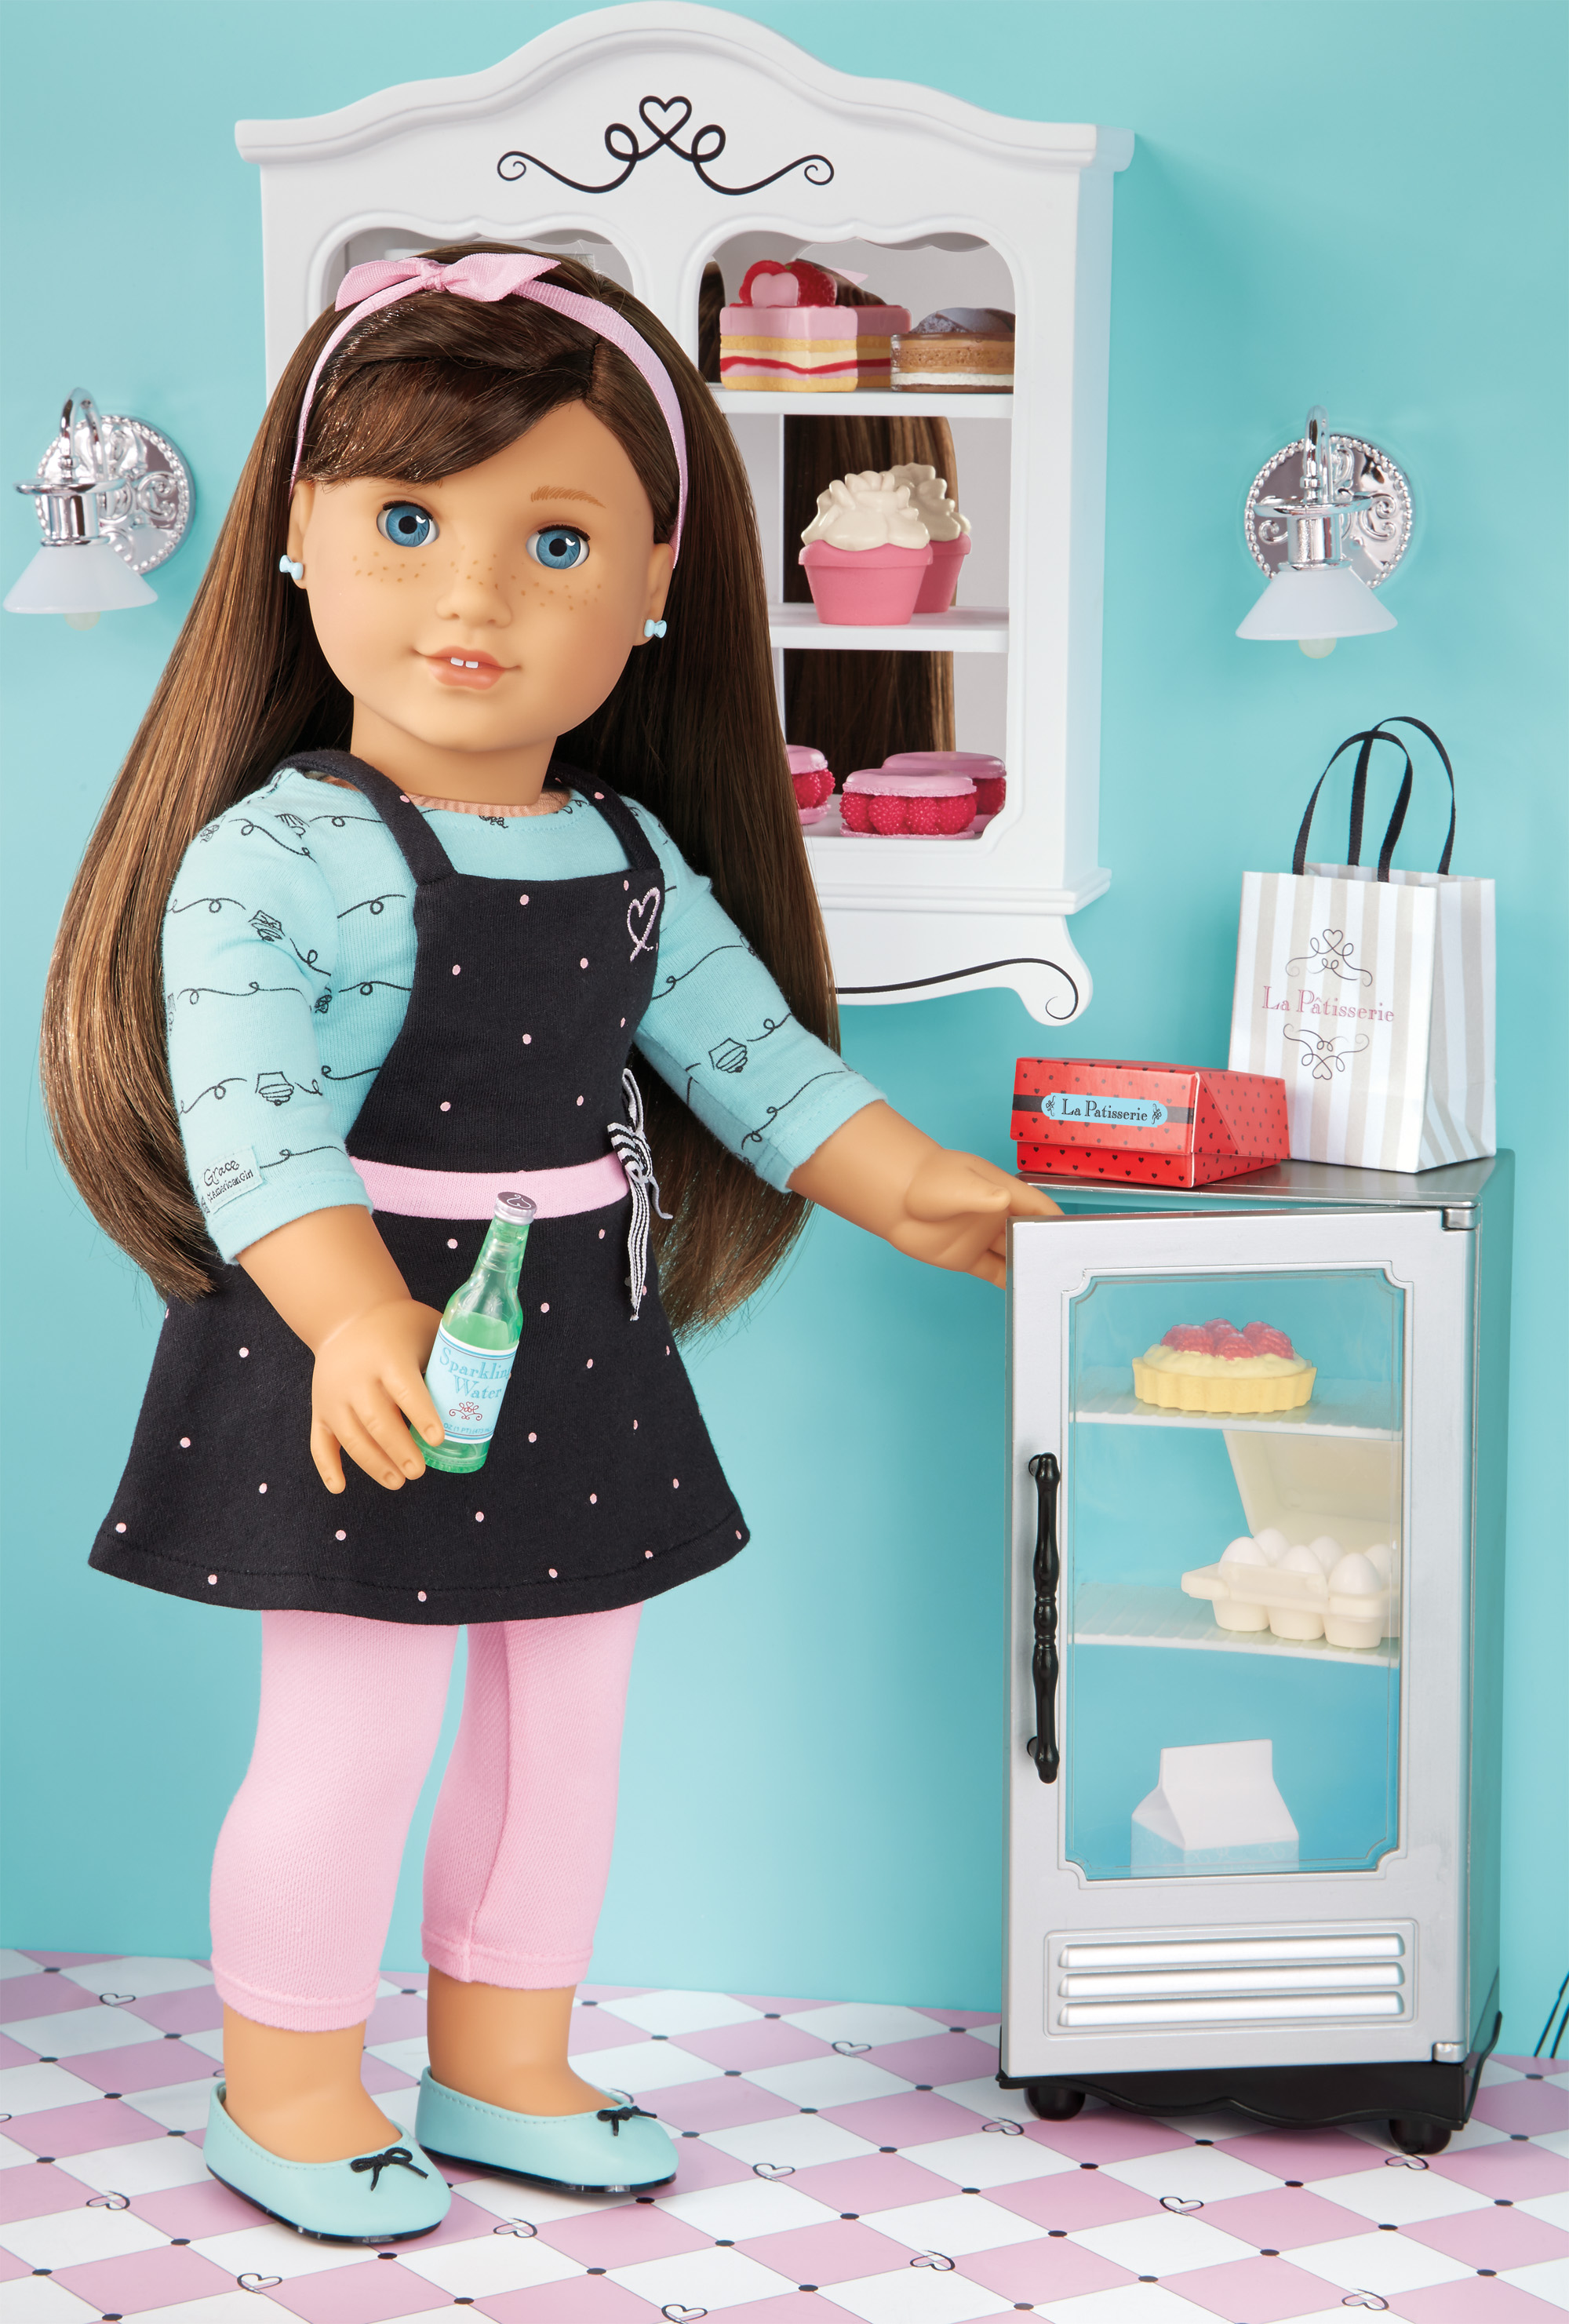 official grace thomas american girl of the year 2015 photos and images